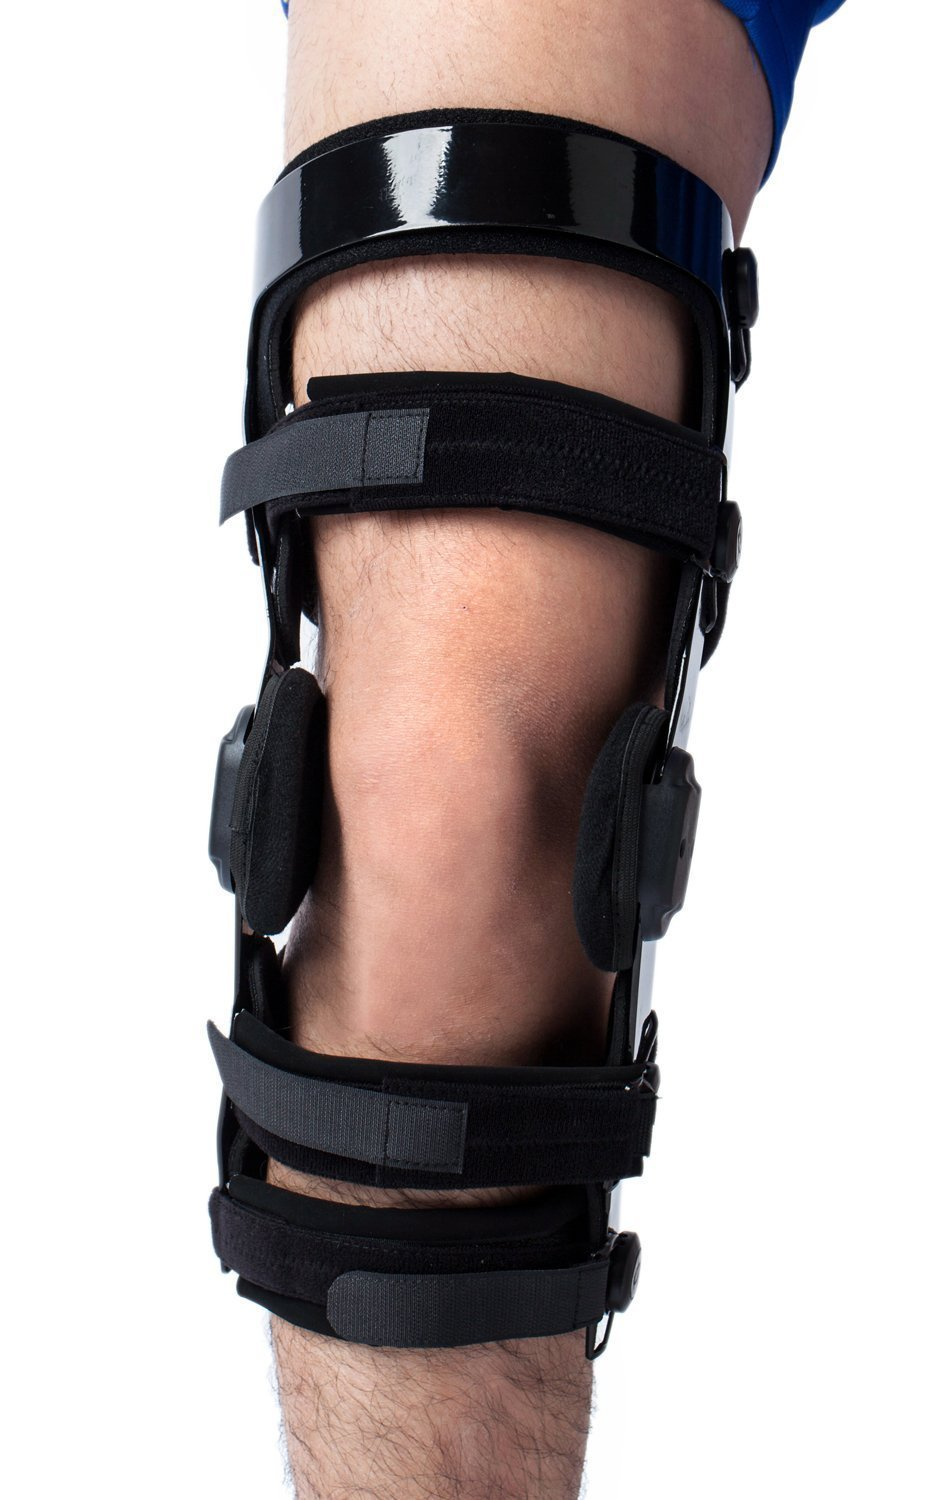 Orthomen Functional Knee Brace - for ACL/MCL/PCL/Meniscus/Ligament/Sports Injuries, Adjustable Hinged ROM Orthopedic Knee Orthosis for Men & Women (Right - XL)